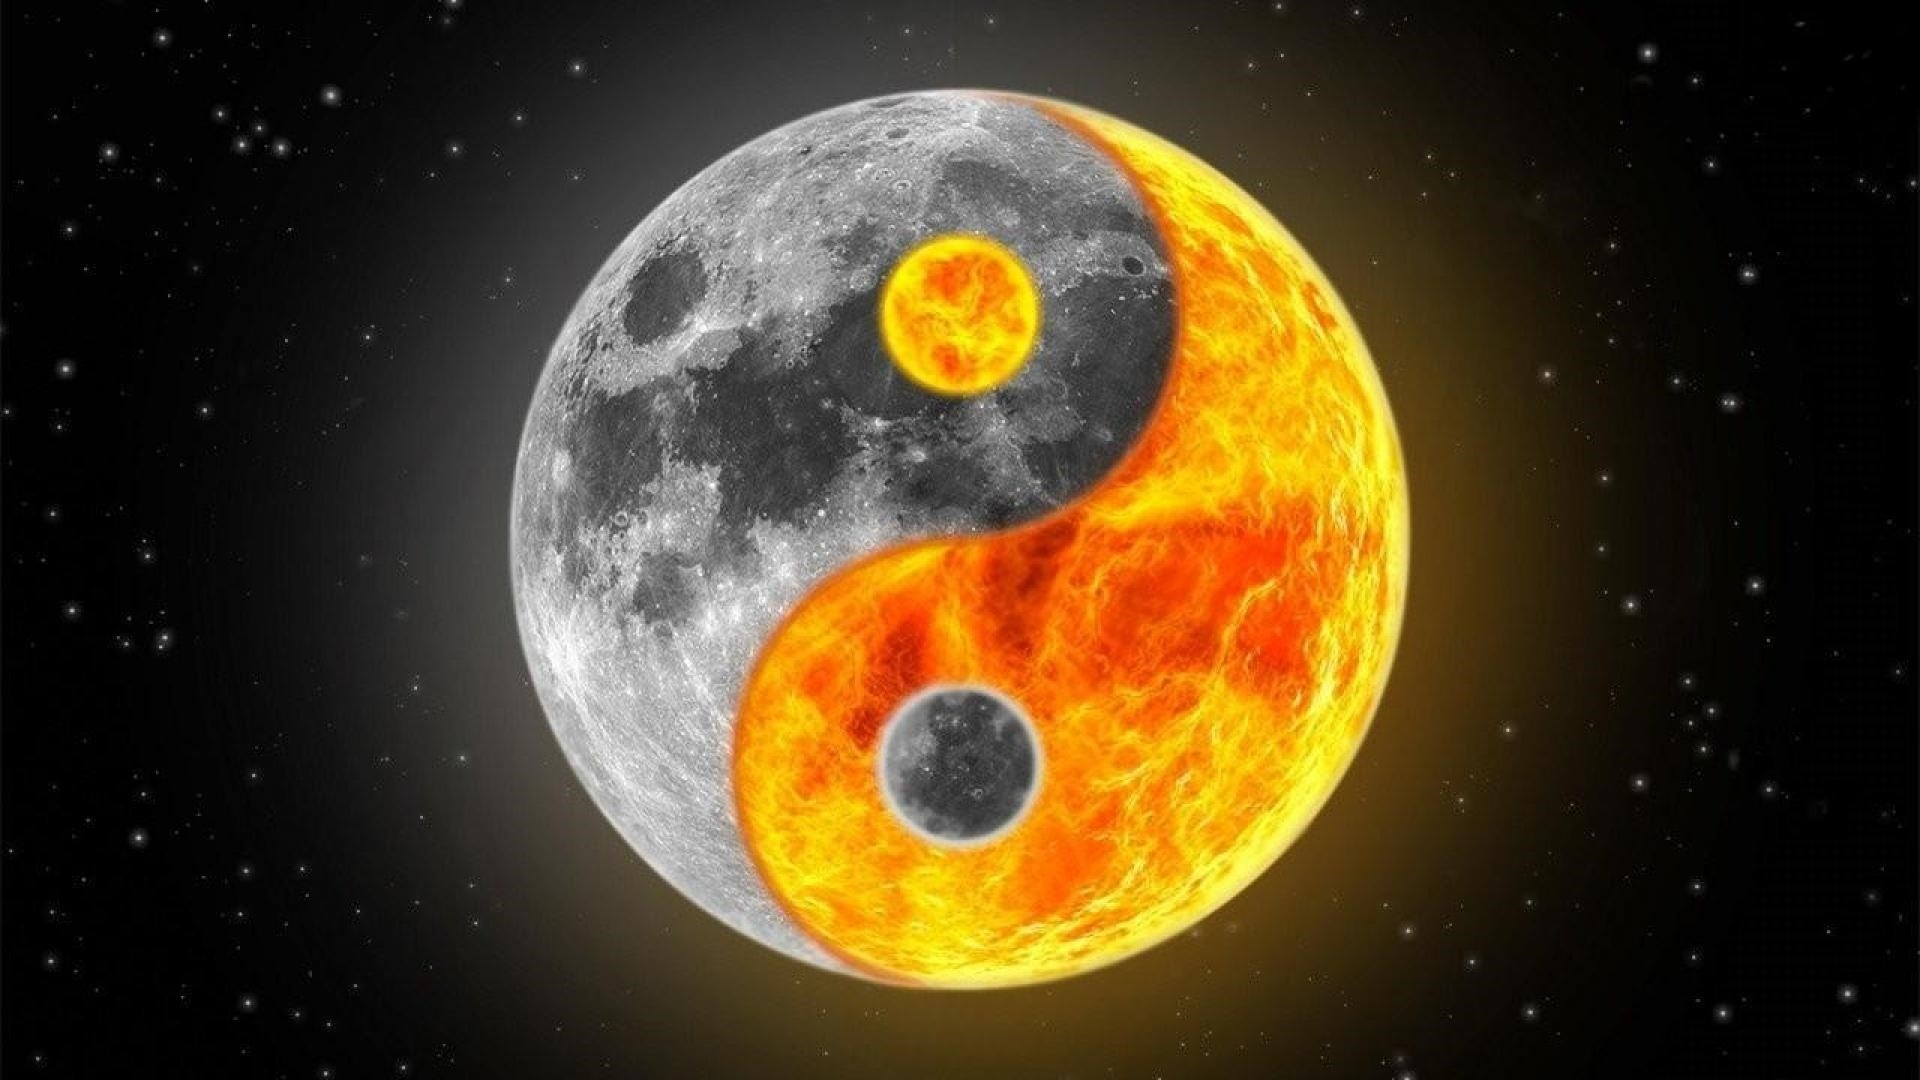 Yin Yang Wallpaper image hd